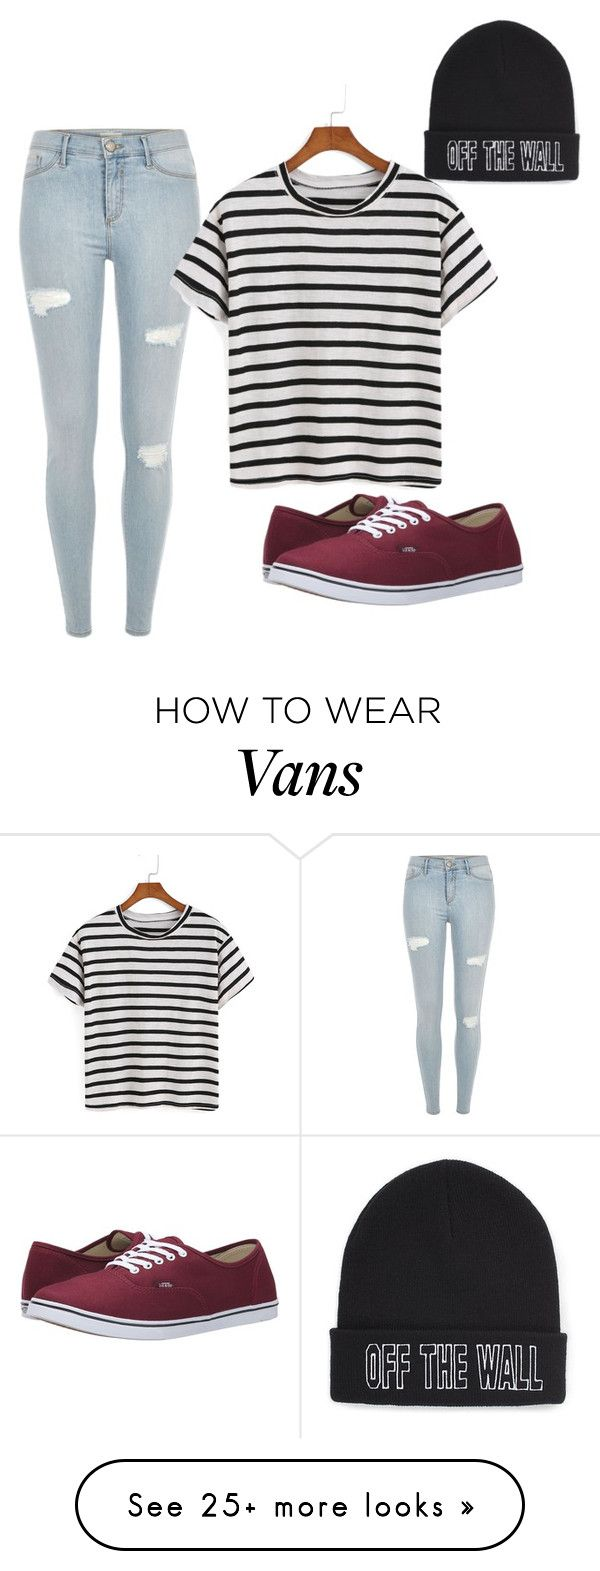 """Untitled #1"" by emmiedallas on Polyvore featuring River Island, Vans, women's clothing, women, female, woman, misses and juniors"